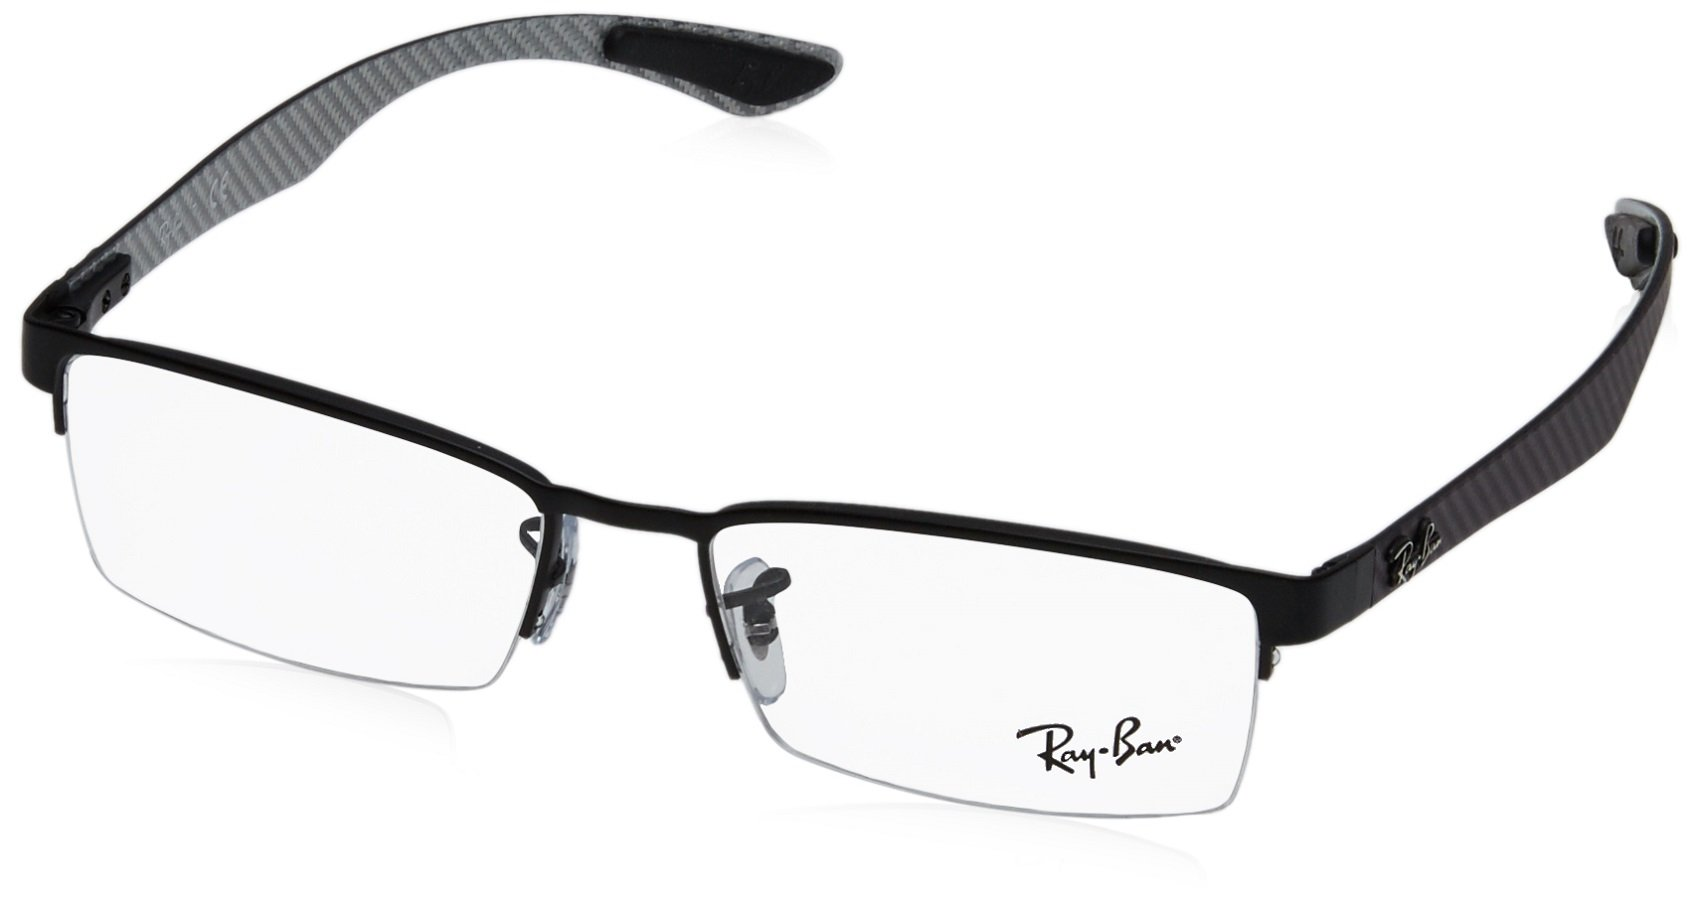 Ray-Ban Men's 0rx8412 No Polarization Rectangular Prescription Eyewear Frame, Matte Black, 52 mm